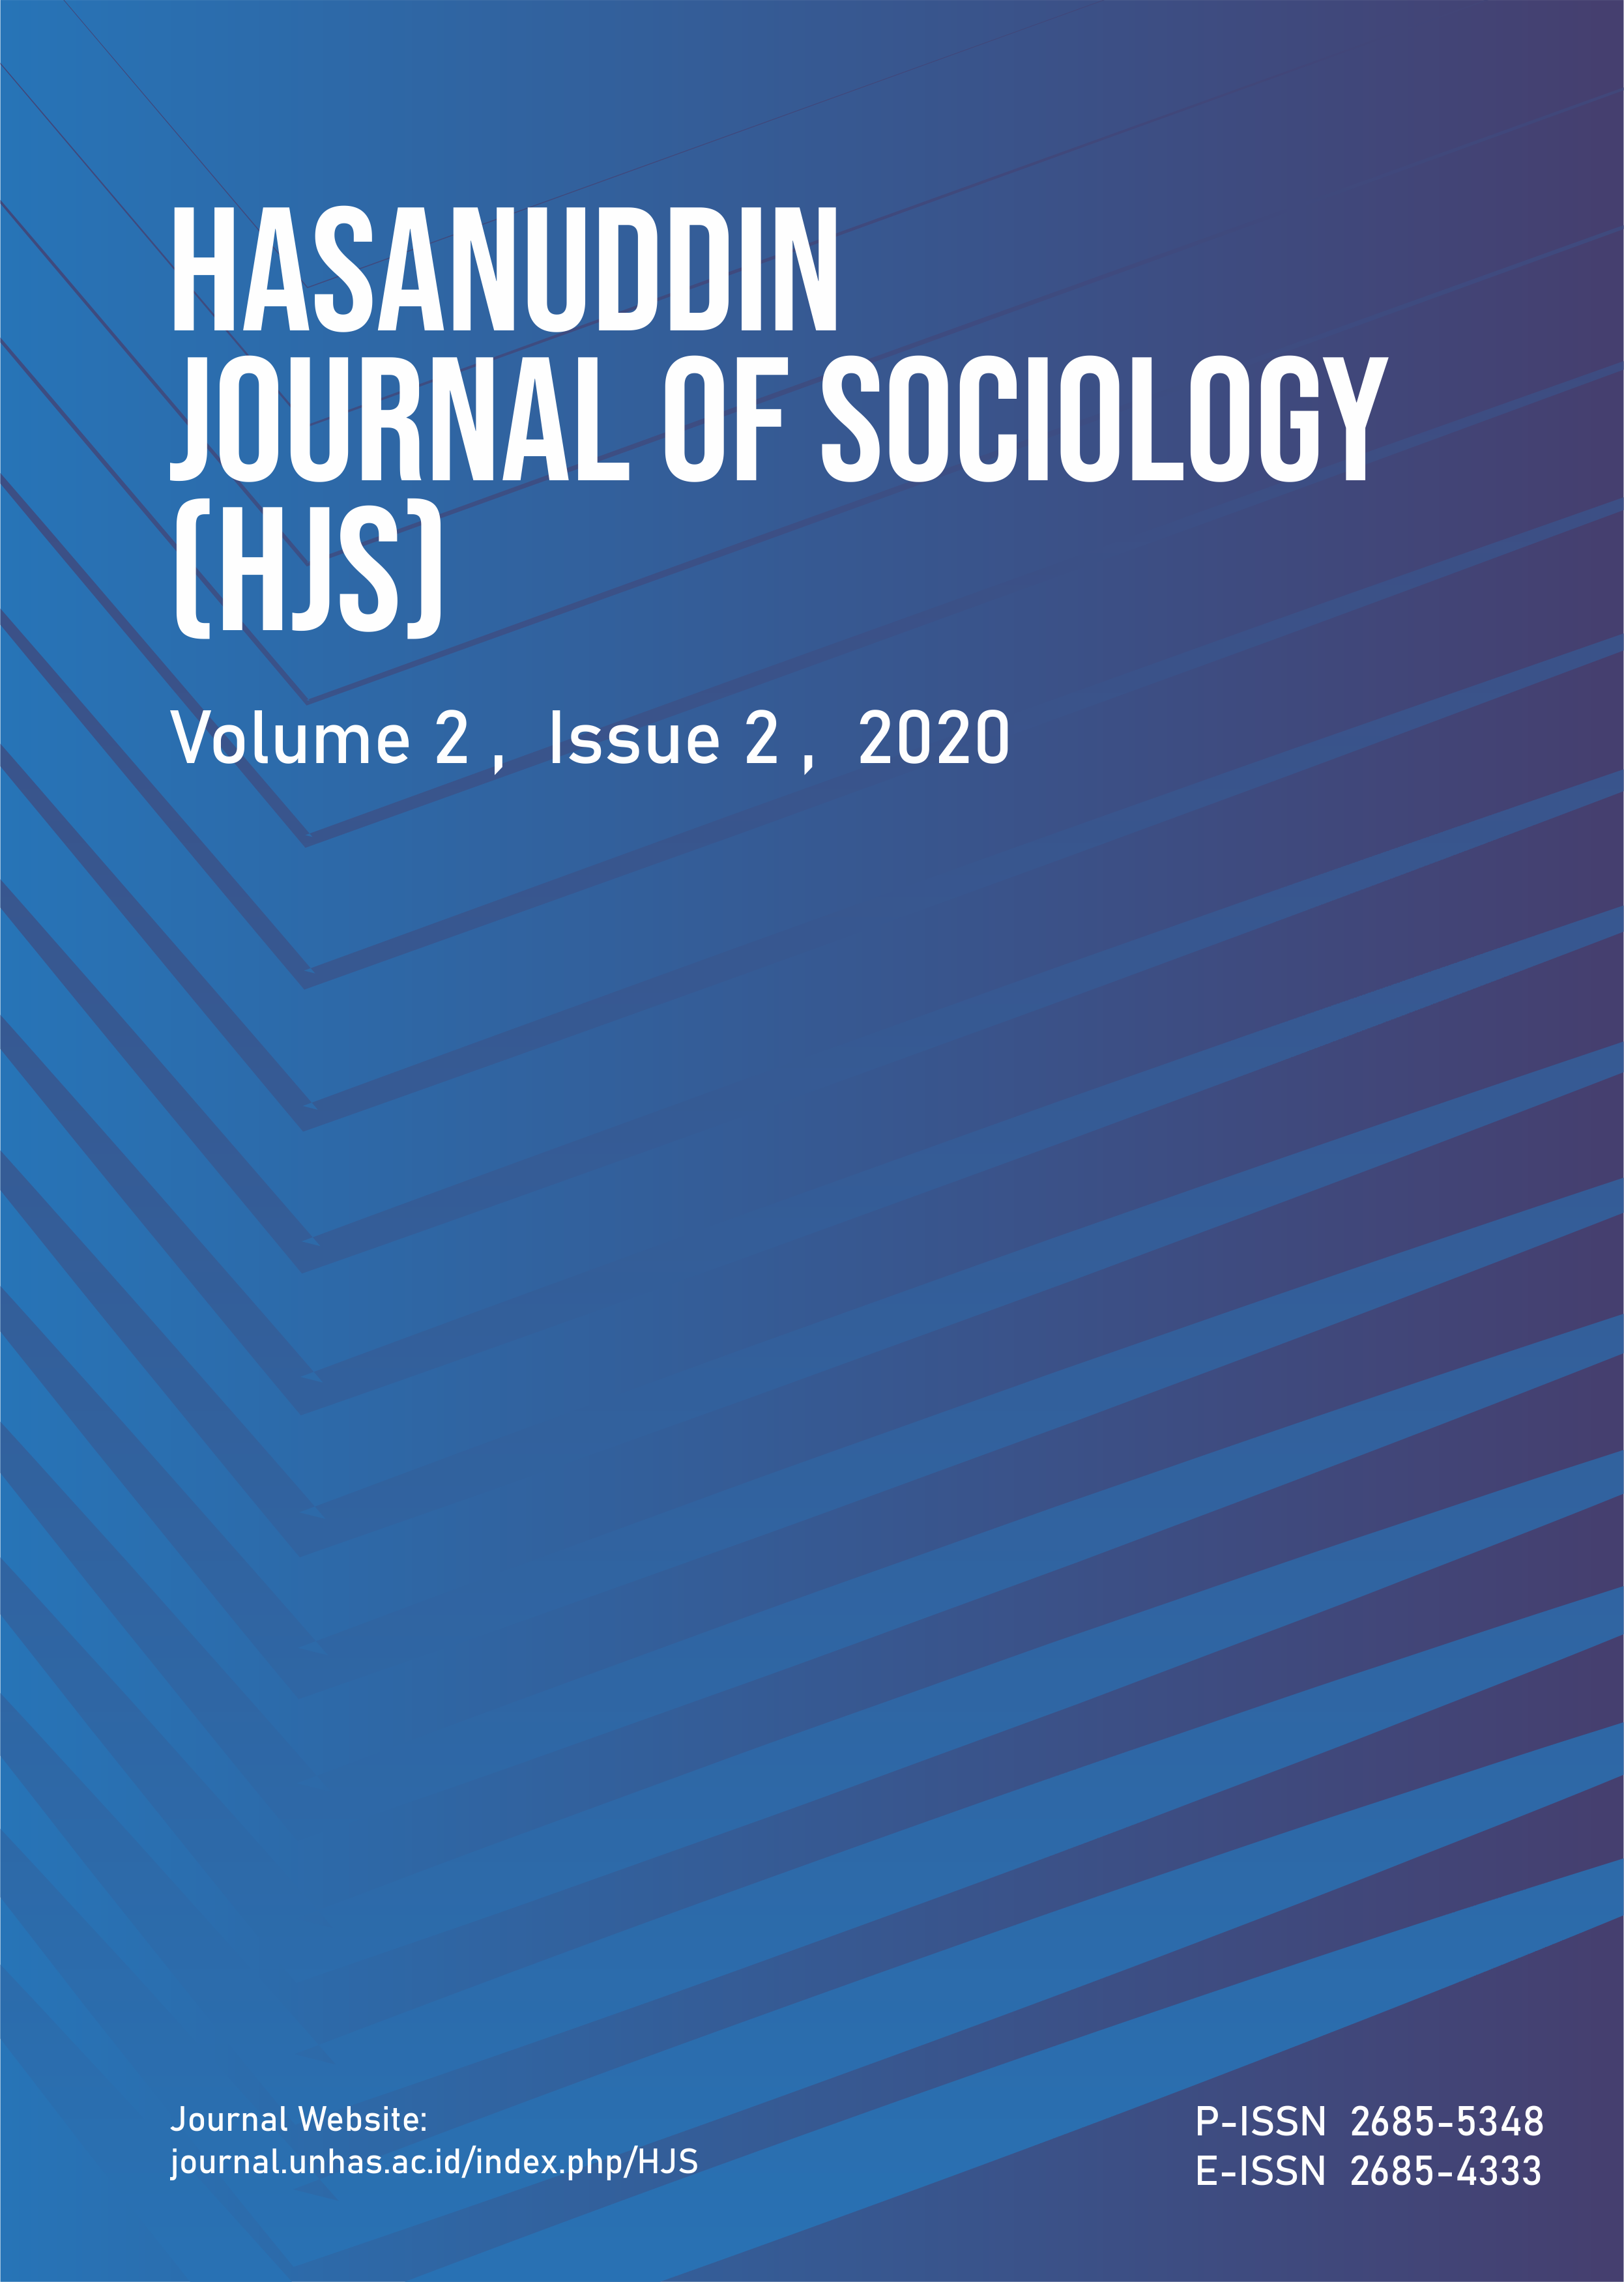 View VOLUME 2, ISSUE 2, 2020